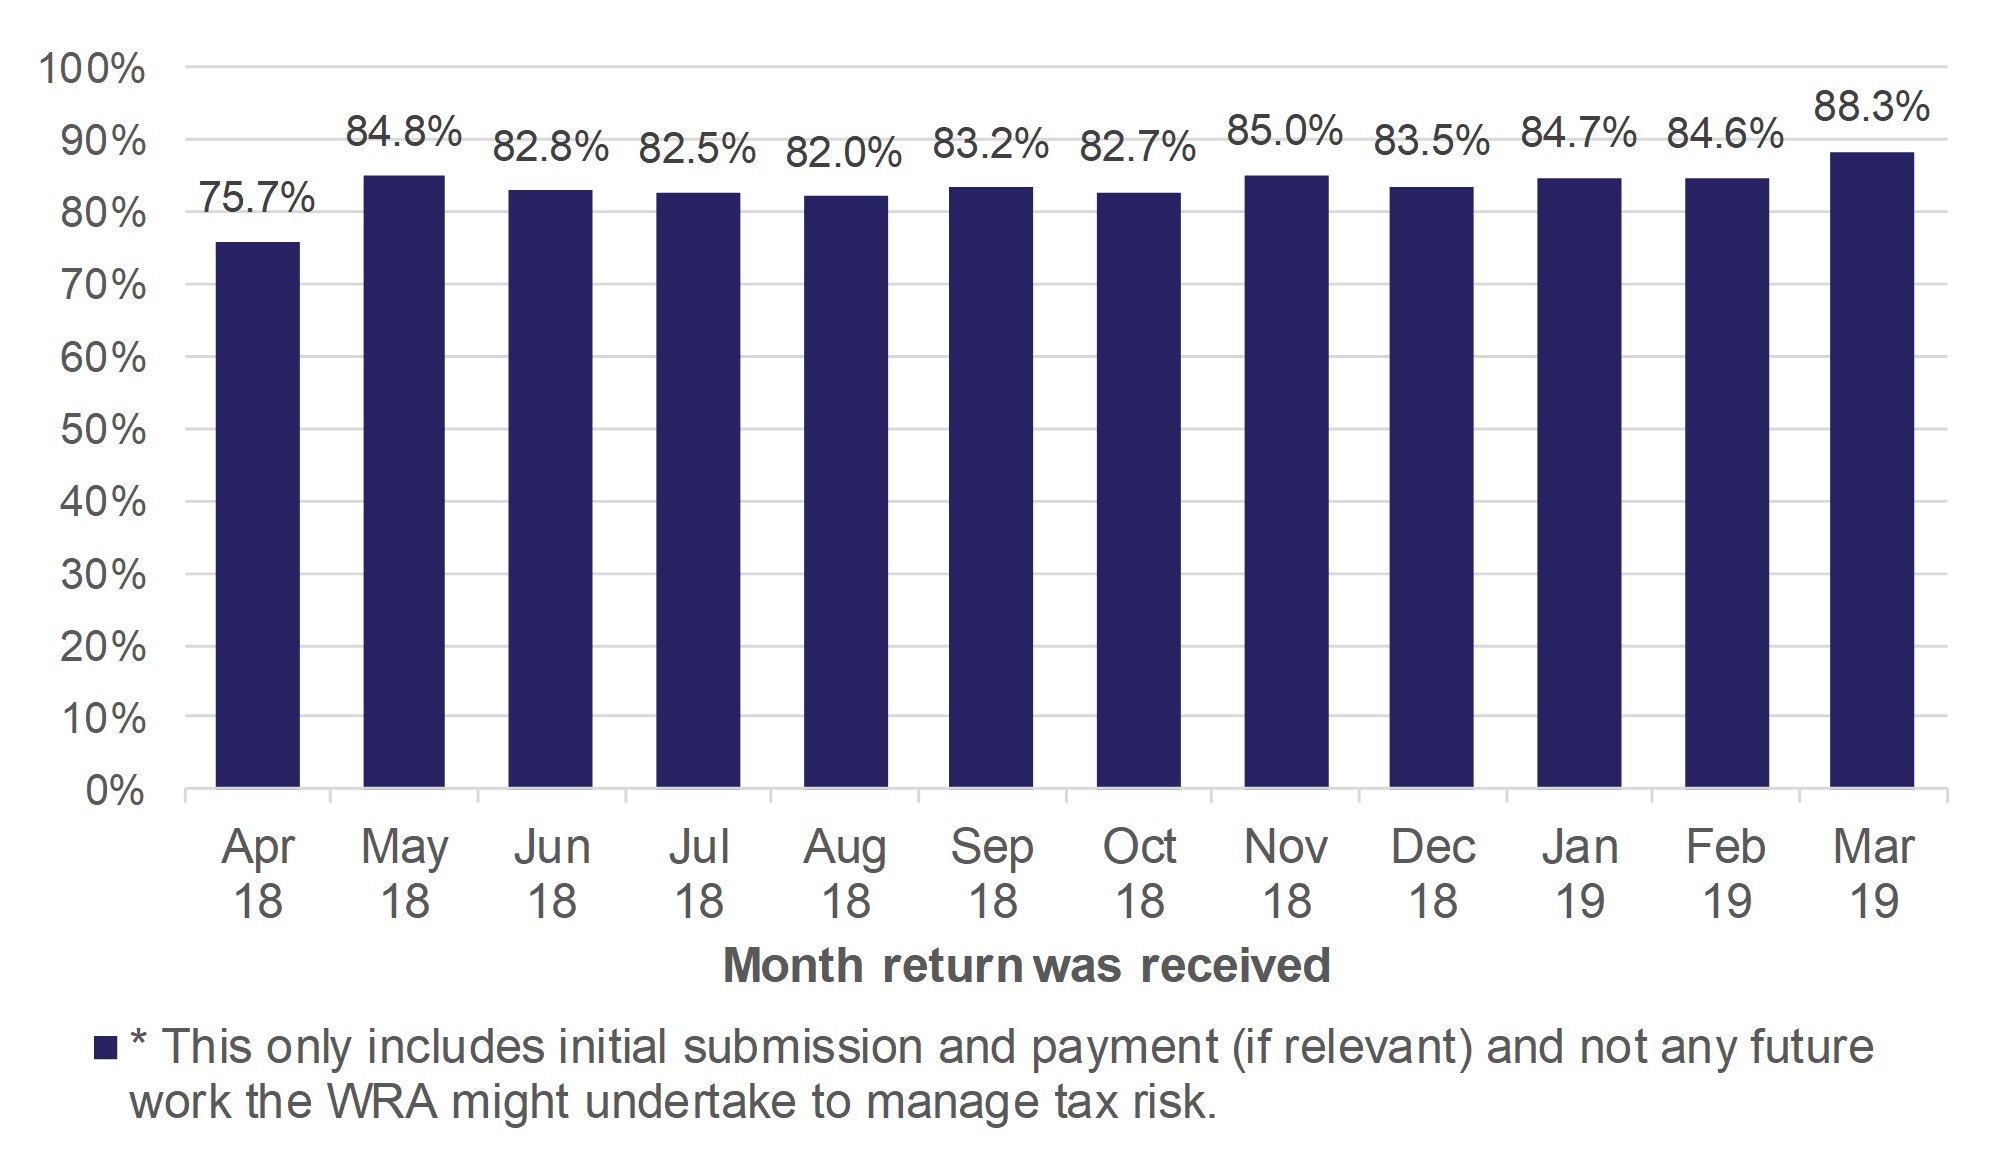 Figure 10.5 shows monthly trends in the percentage of transactions that automatically progress to initial closure with no WRA intervention, for returns received in April 2018 to March 2019.